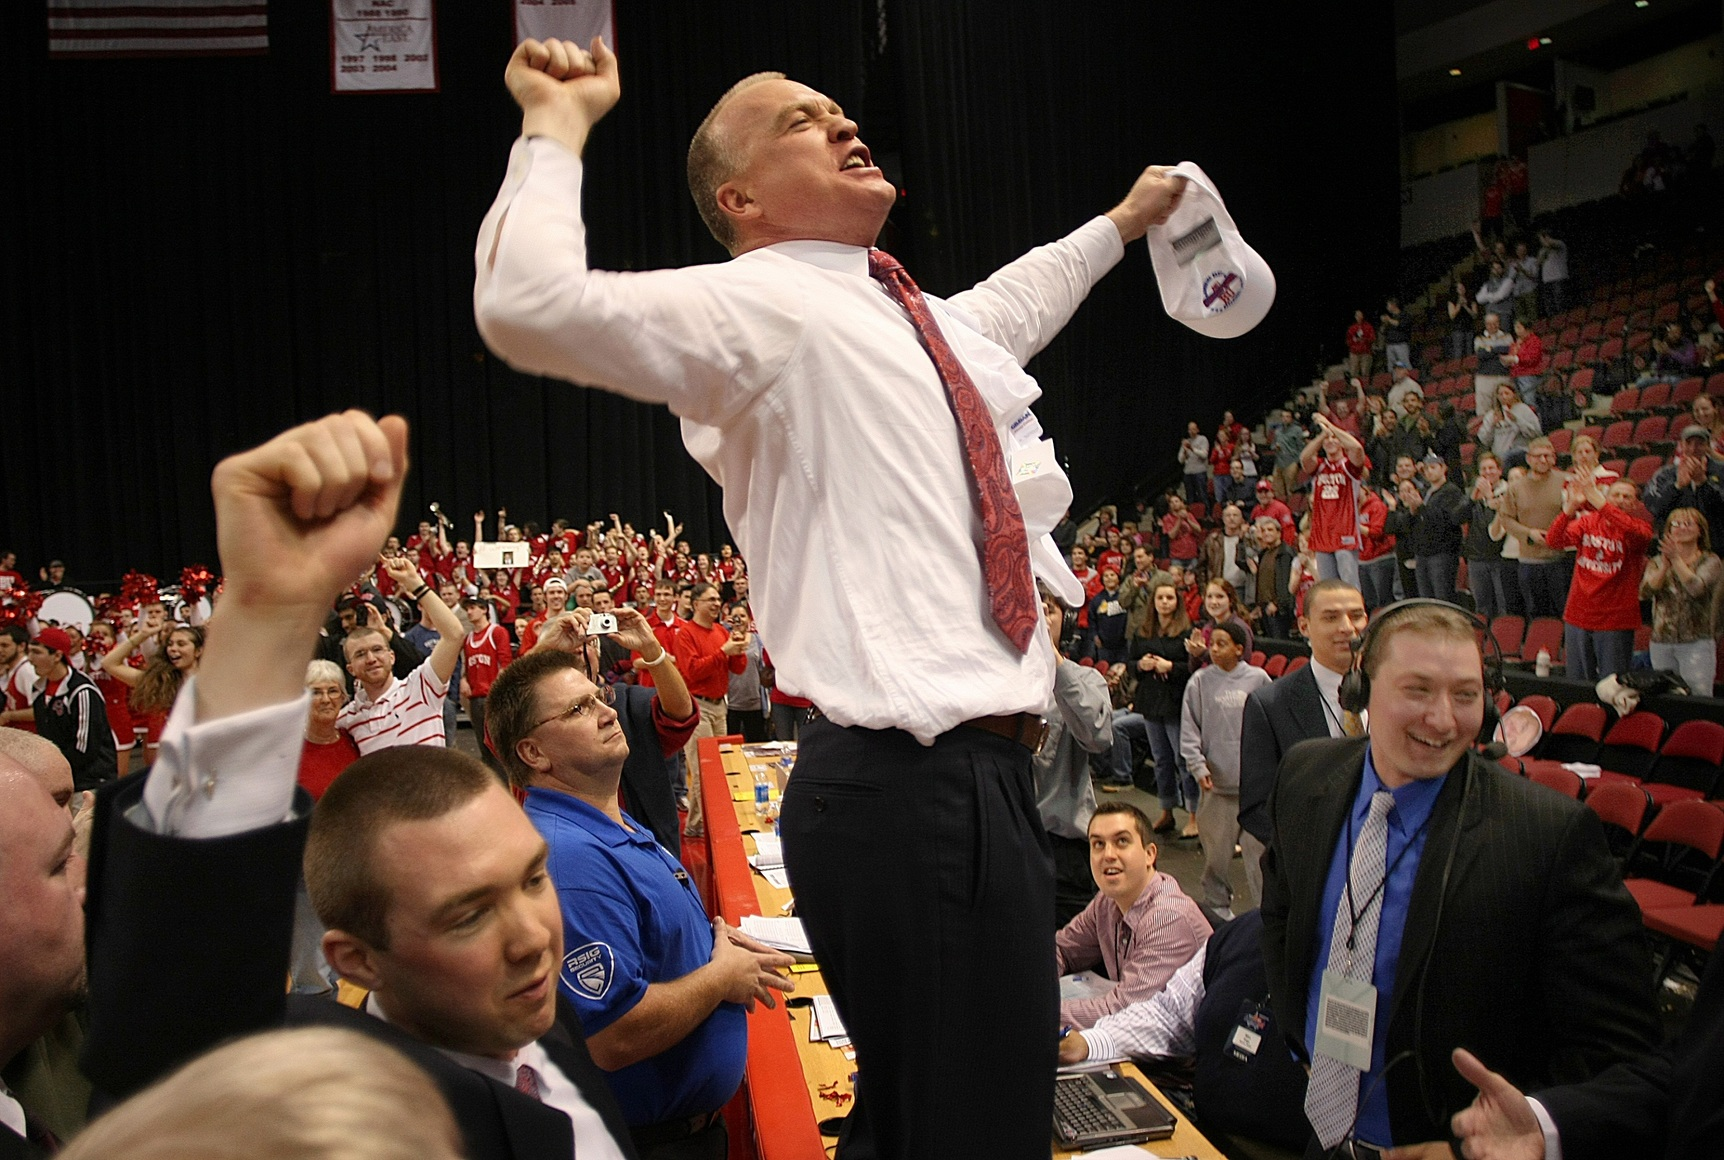 Patrick Chambers Jumps After BU Beat Stony Brook, Gettying A Trip To NCAA Tournament